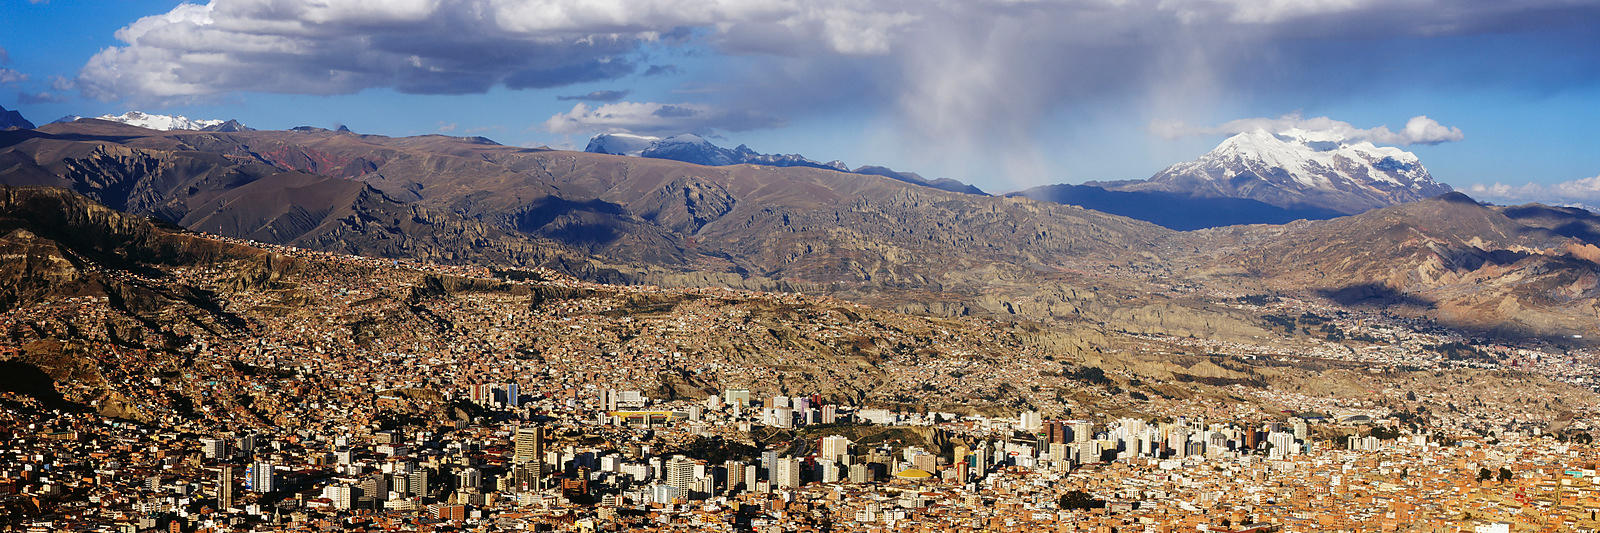 La Paz and Illimani Volcano, Bolivia